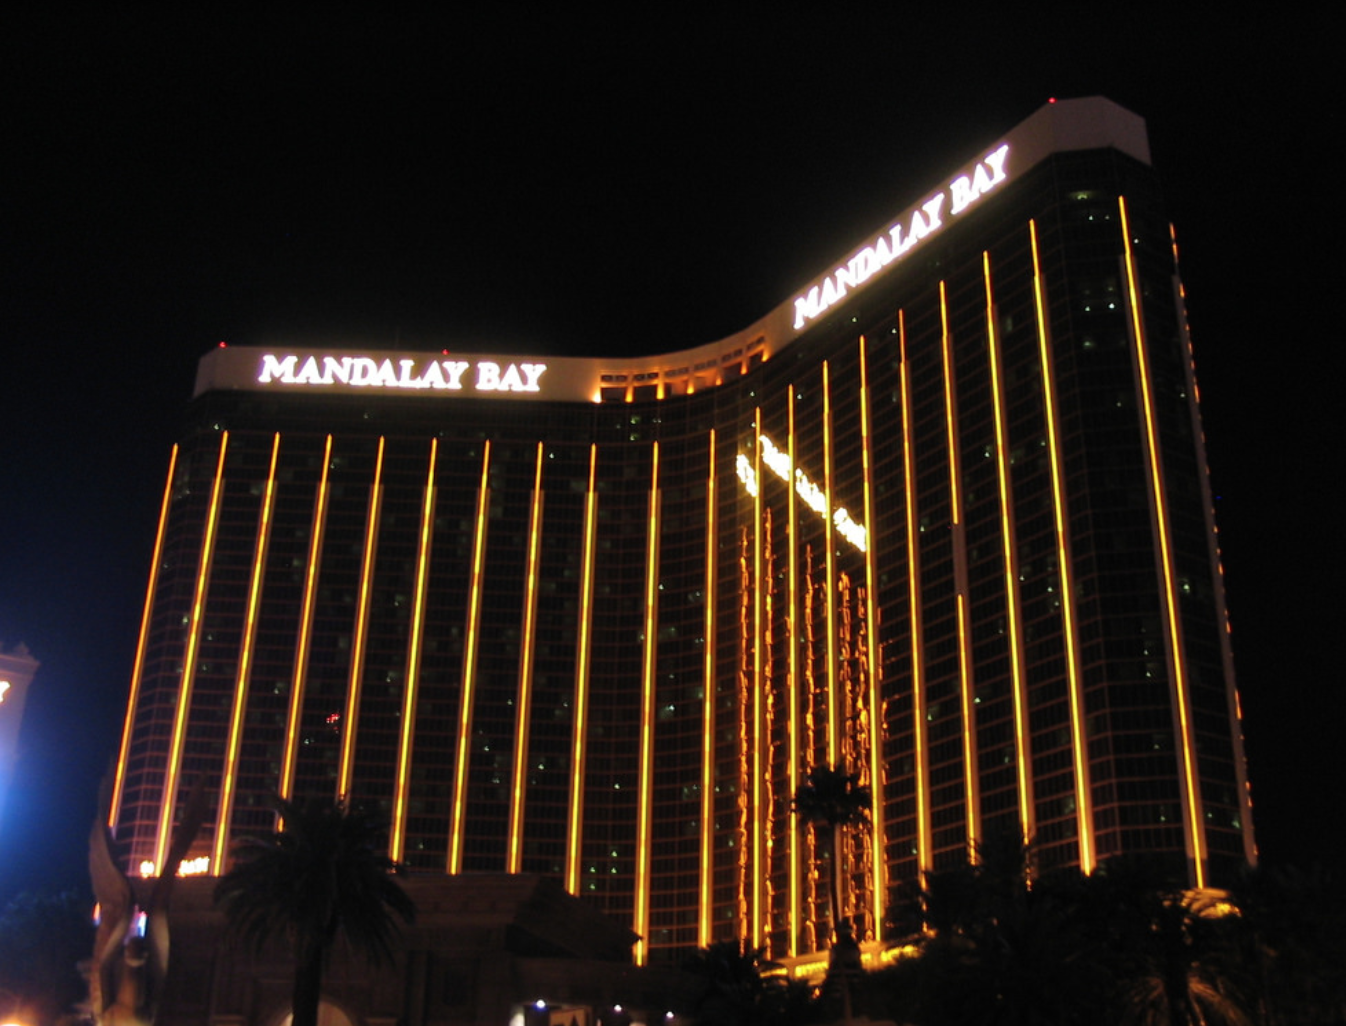 Mandalay Bay Shooting At Route 91 Harvest Festival October 1 Photo: Ken Lund, Flickr, No Change